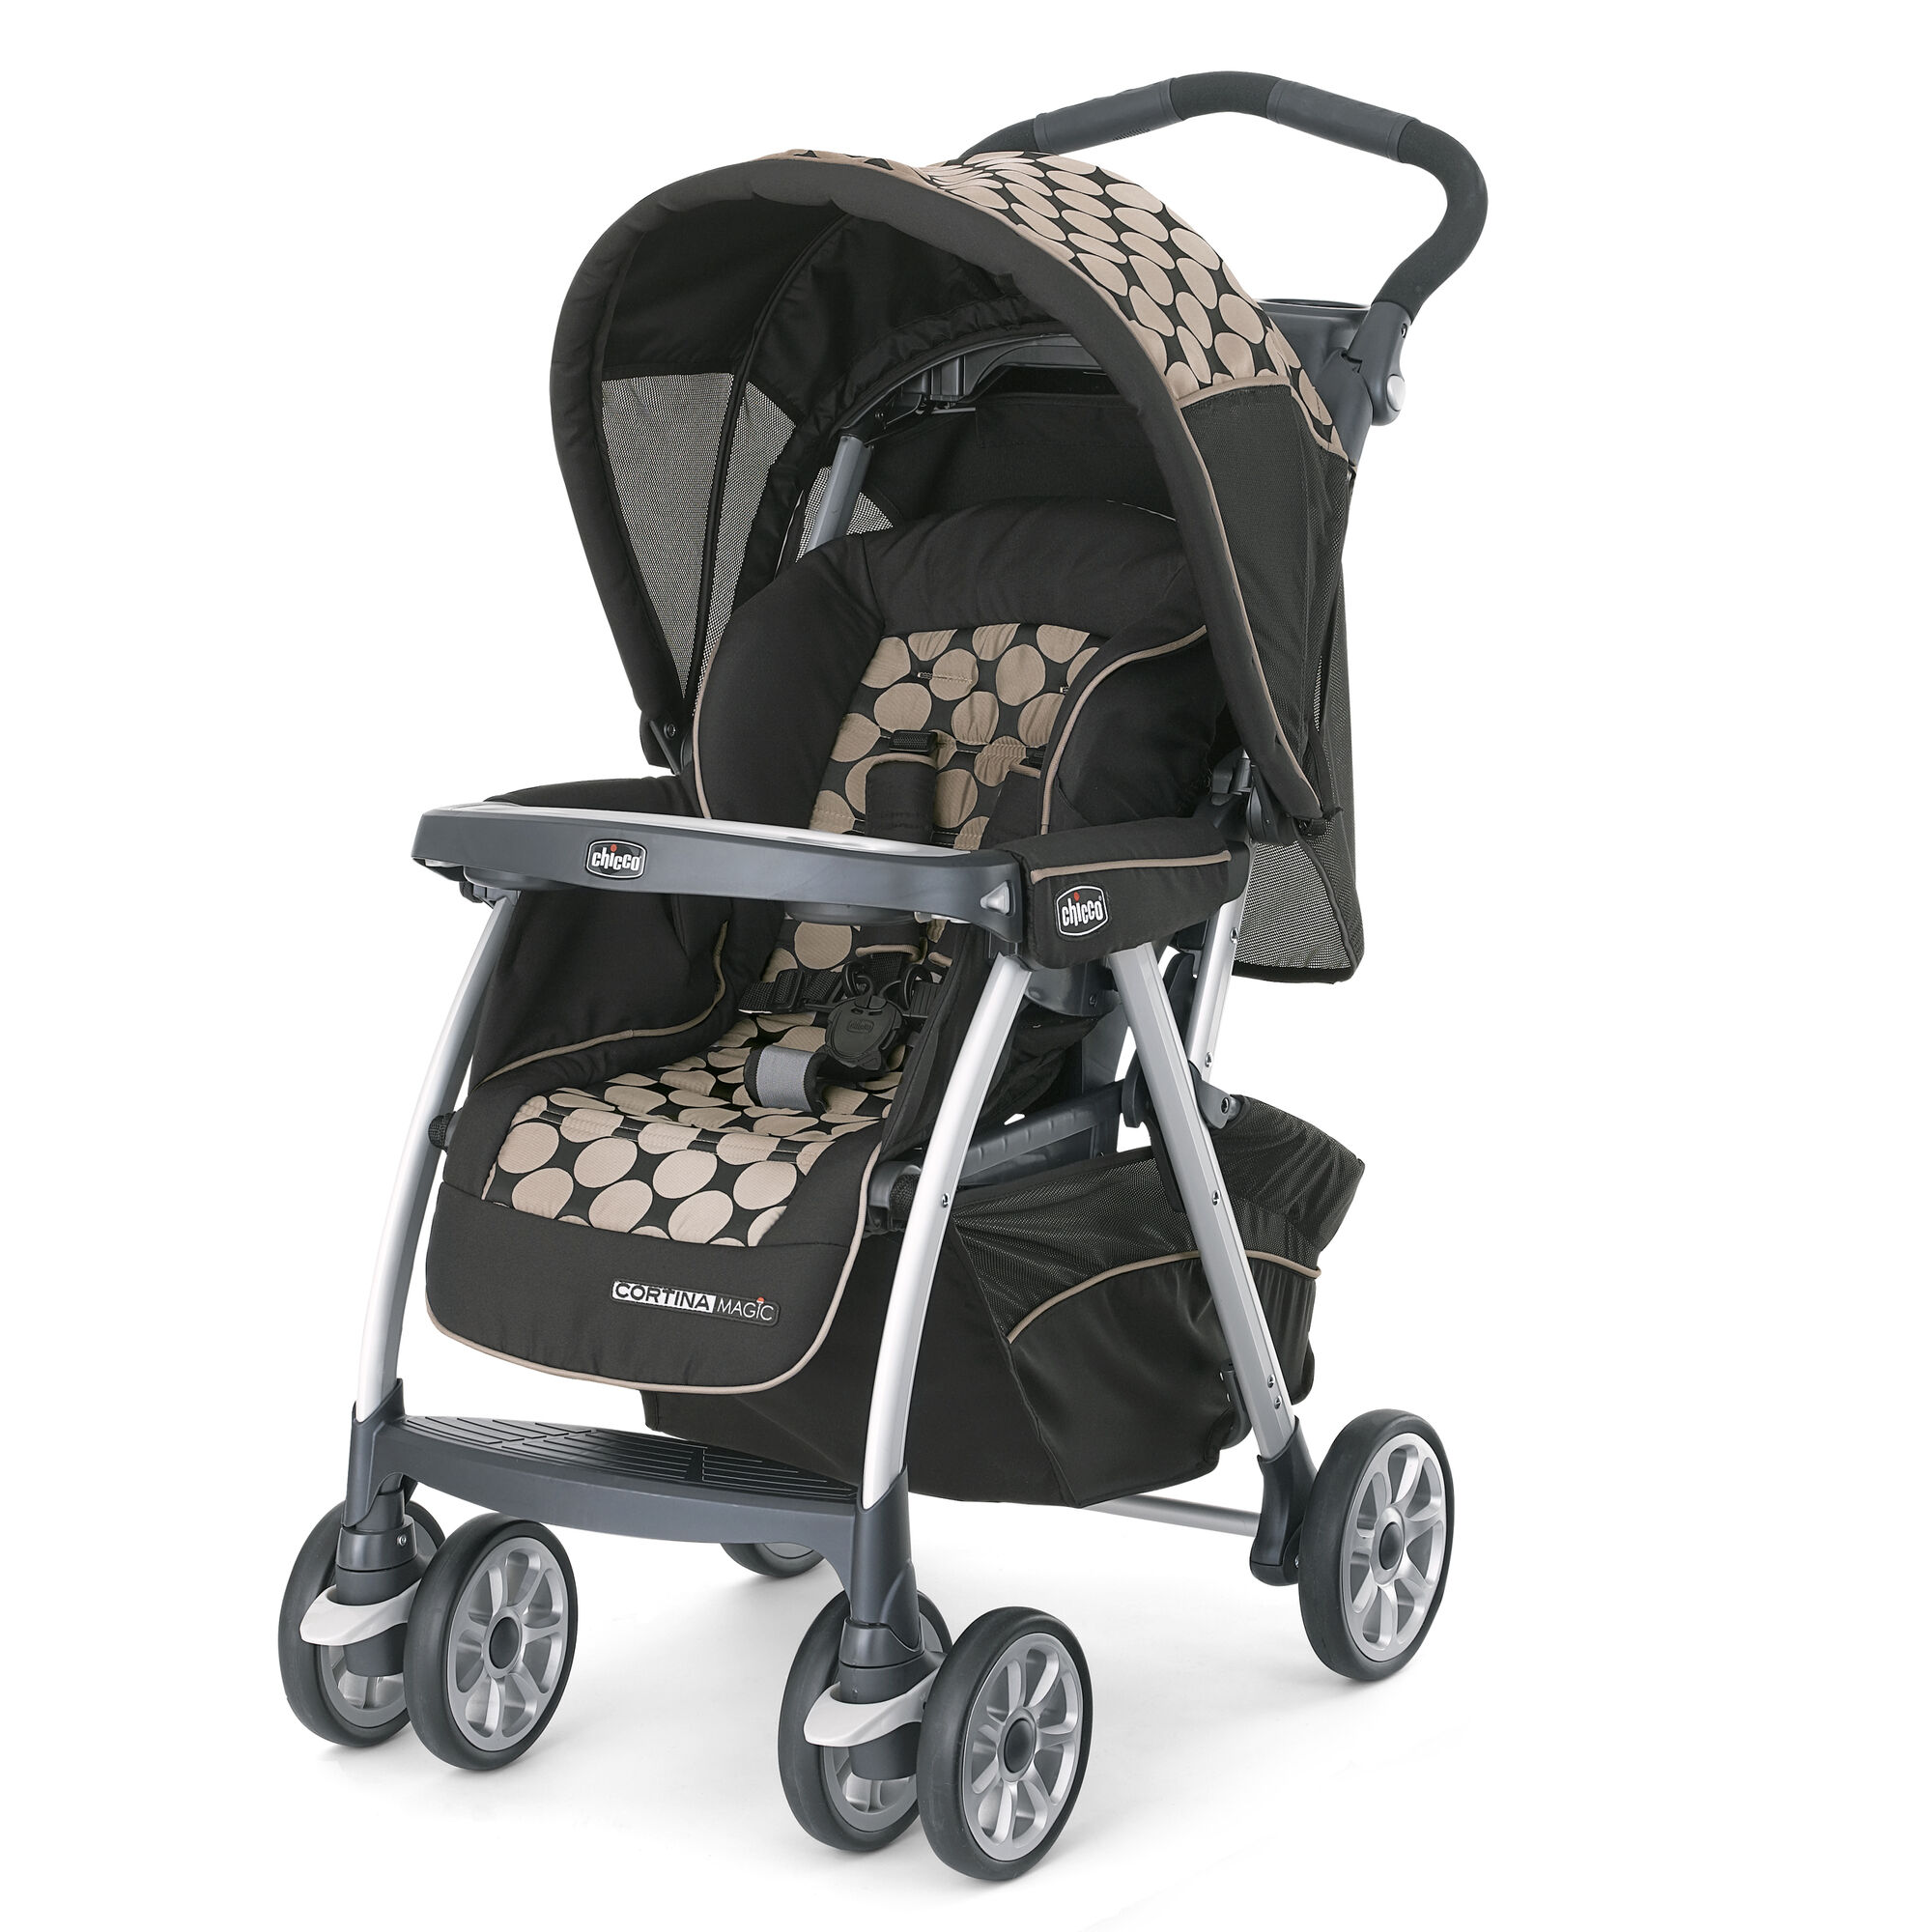 Chicco Cortina Magic Stroller in Black with large tan circle pattern Solare style